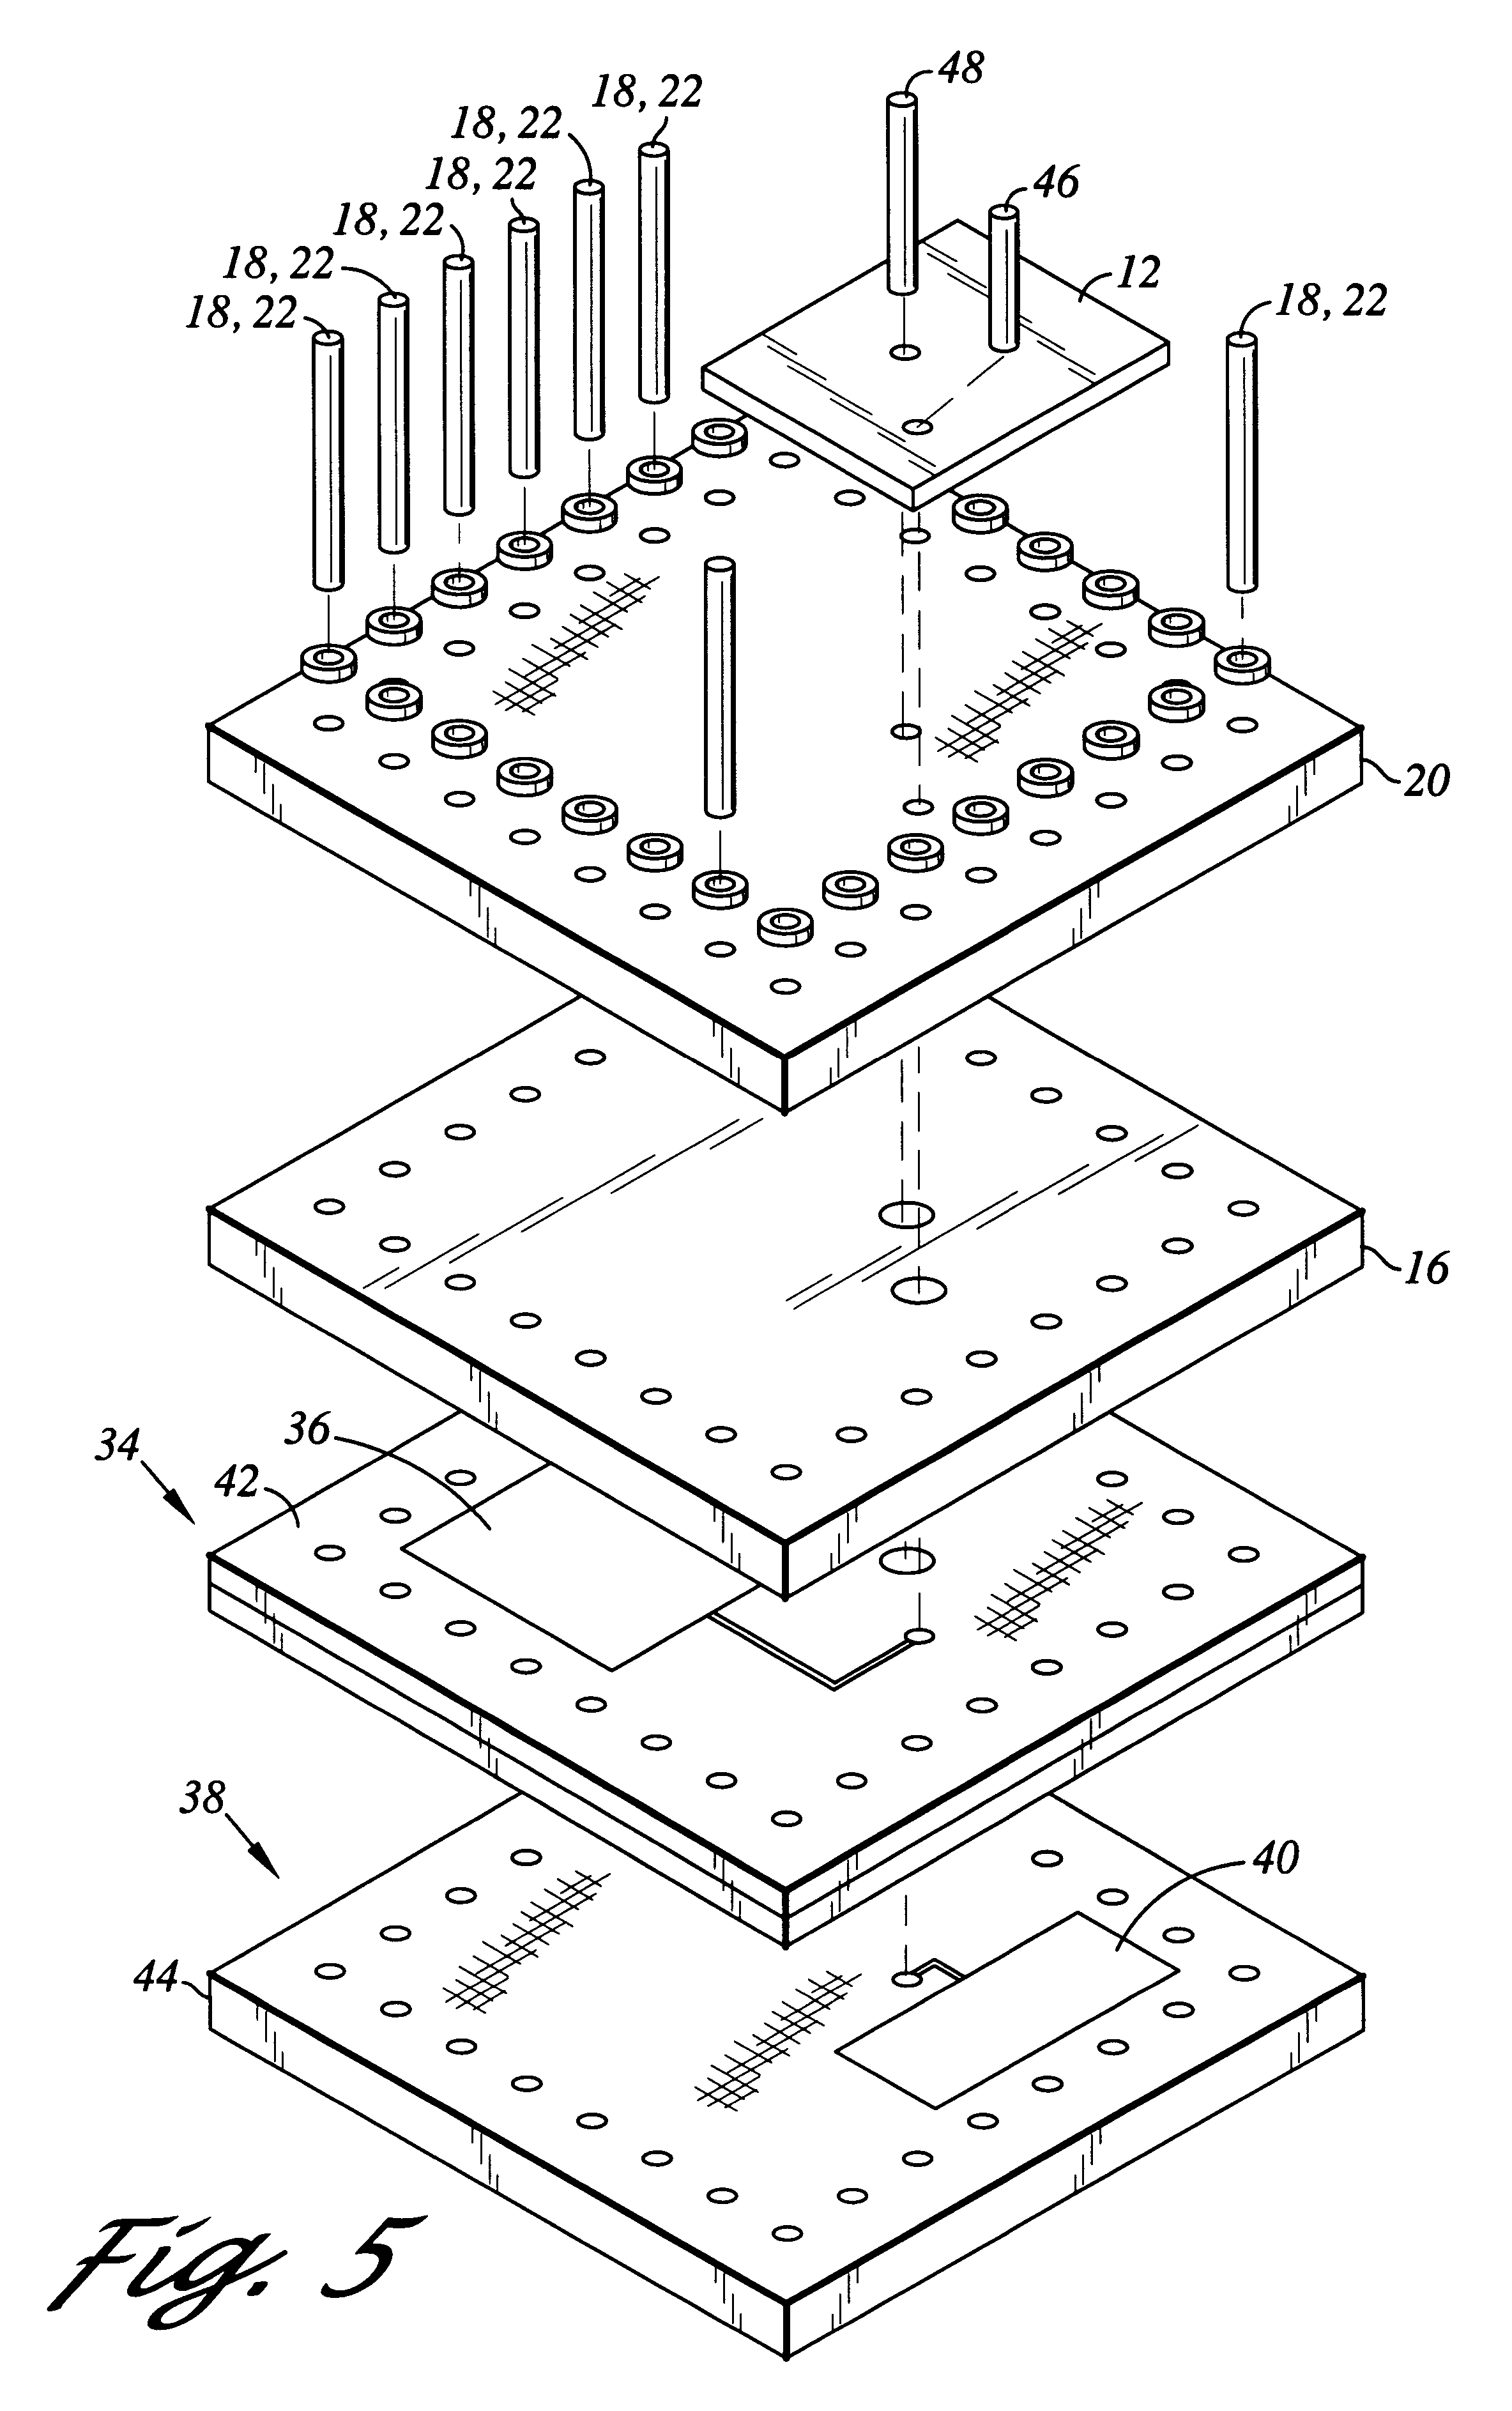 Electrically Small Rectangular Patch Antenna with Slot